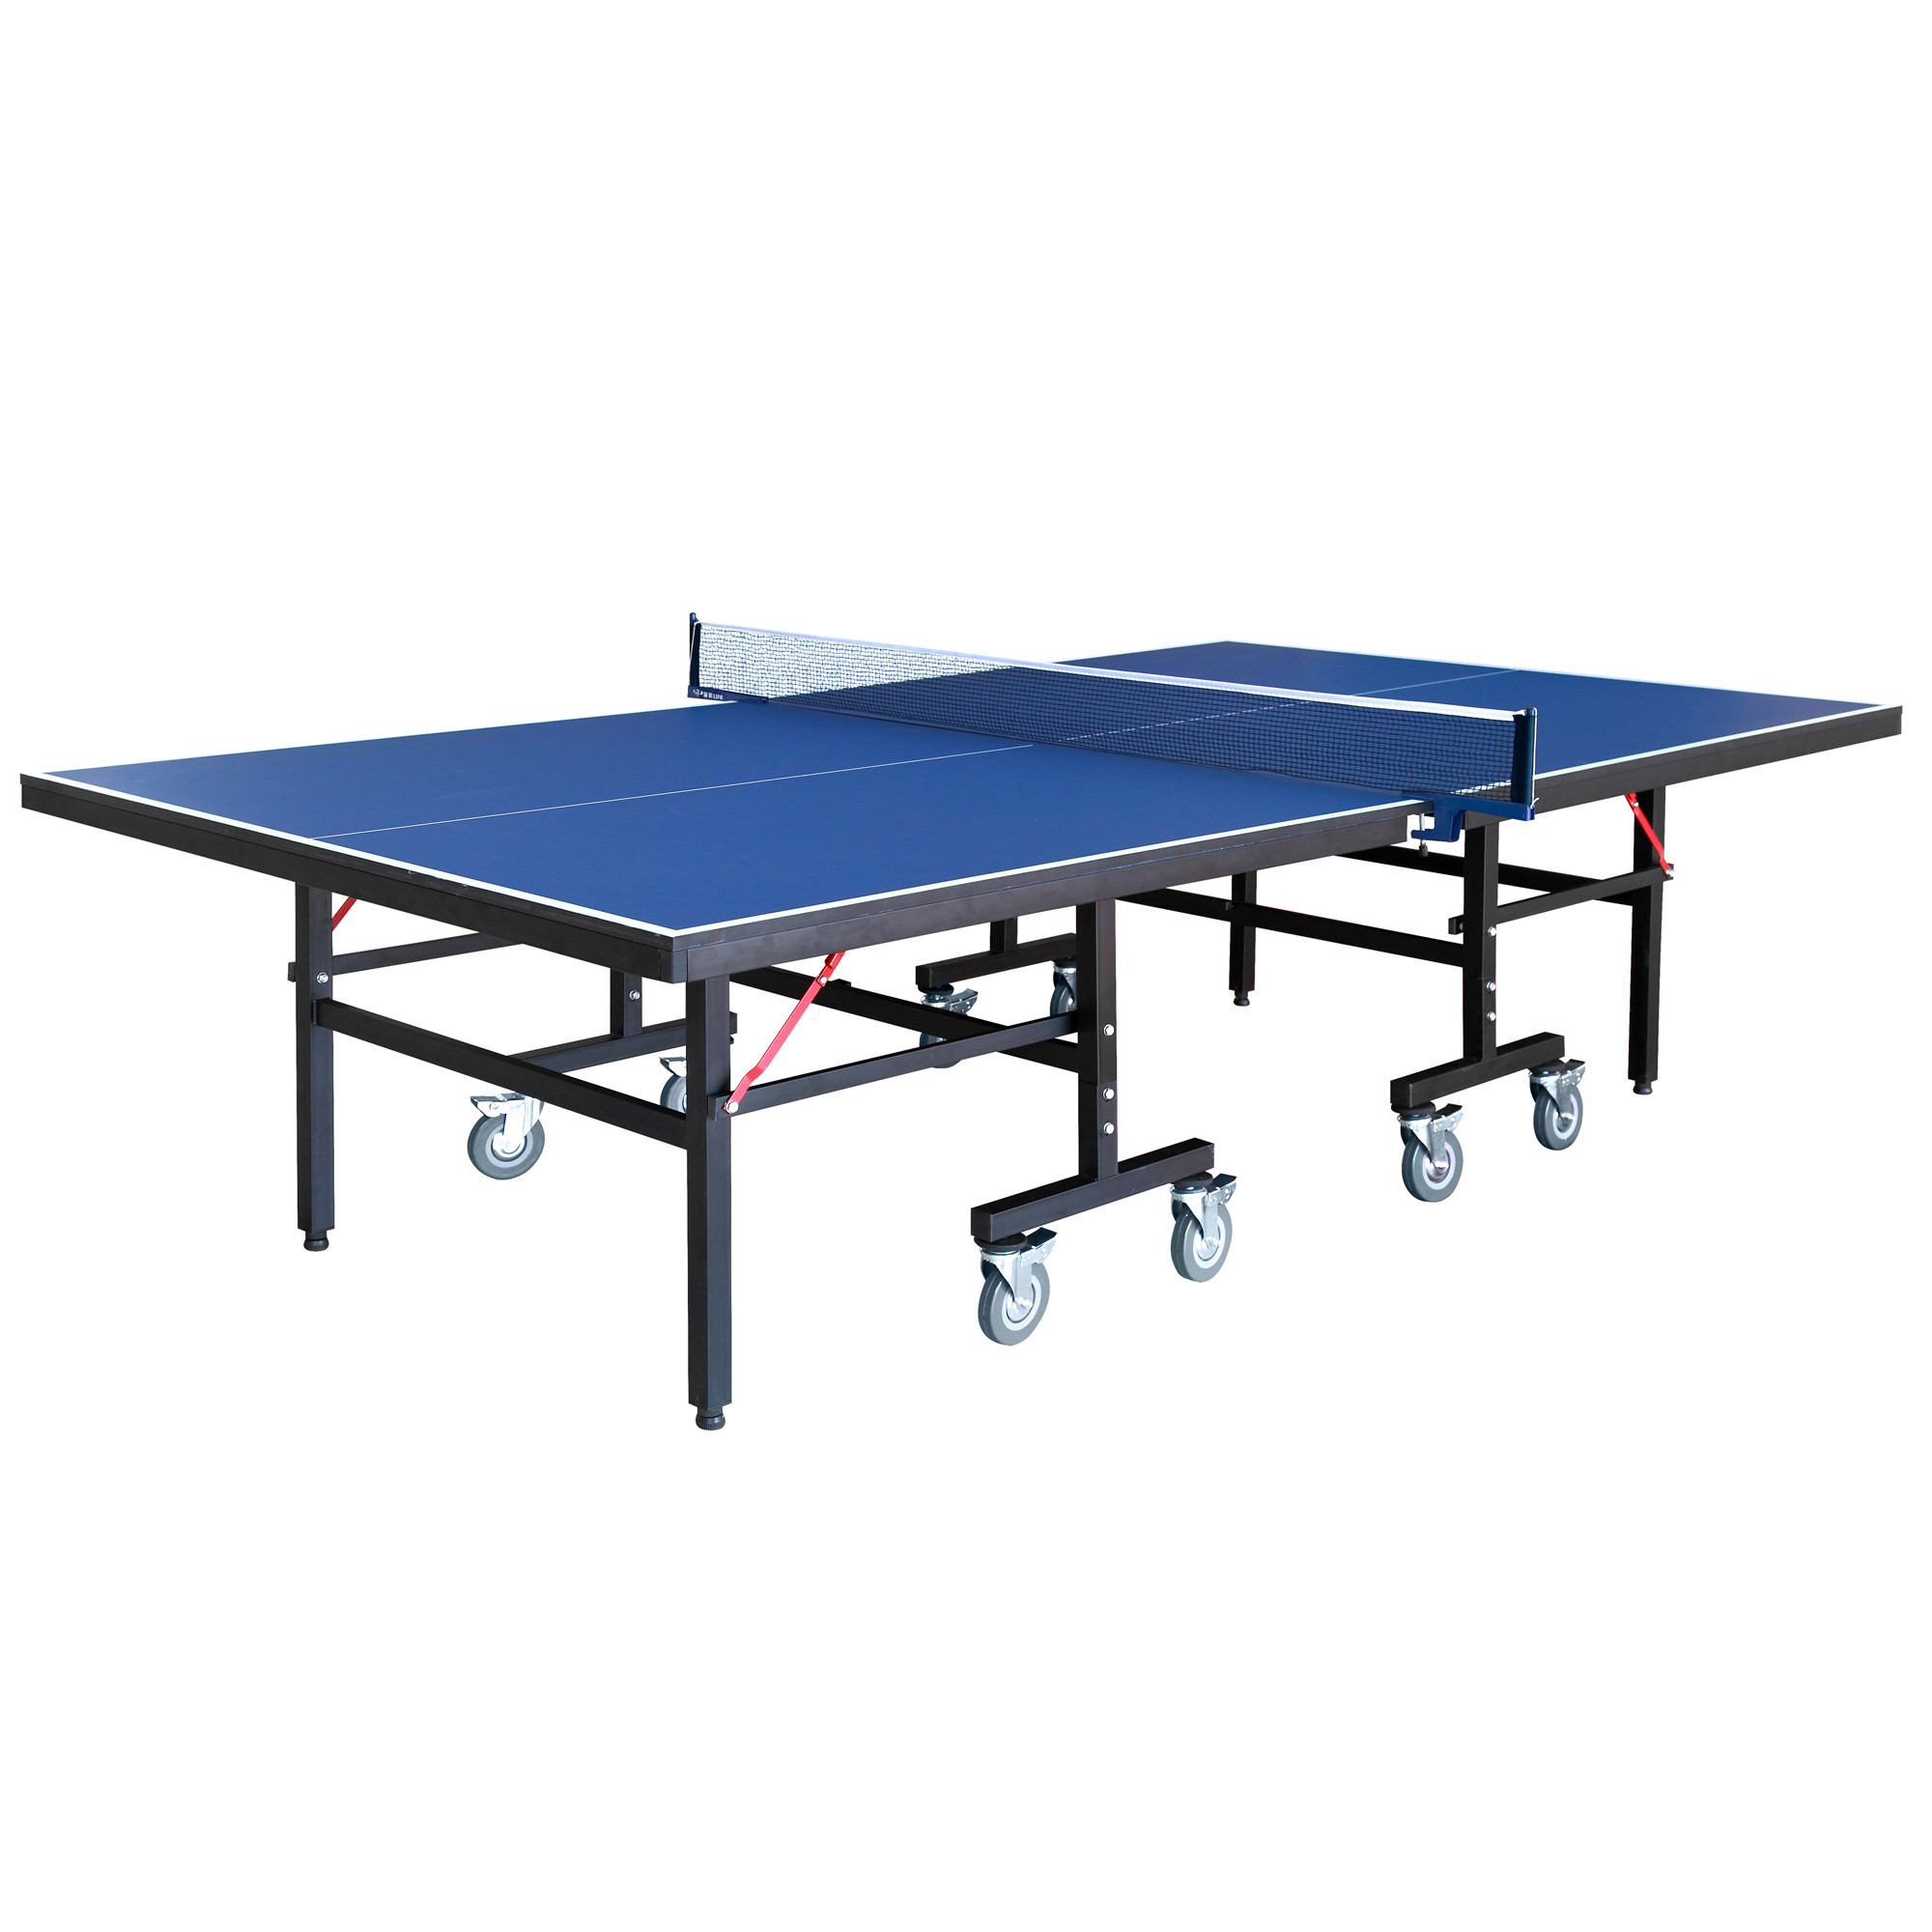 Hathaway Back Stop Table Tennis, 9-Foot, Blue